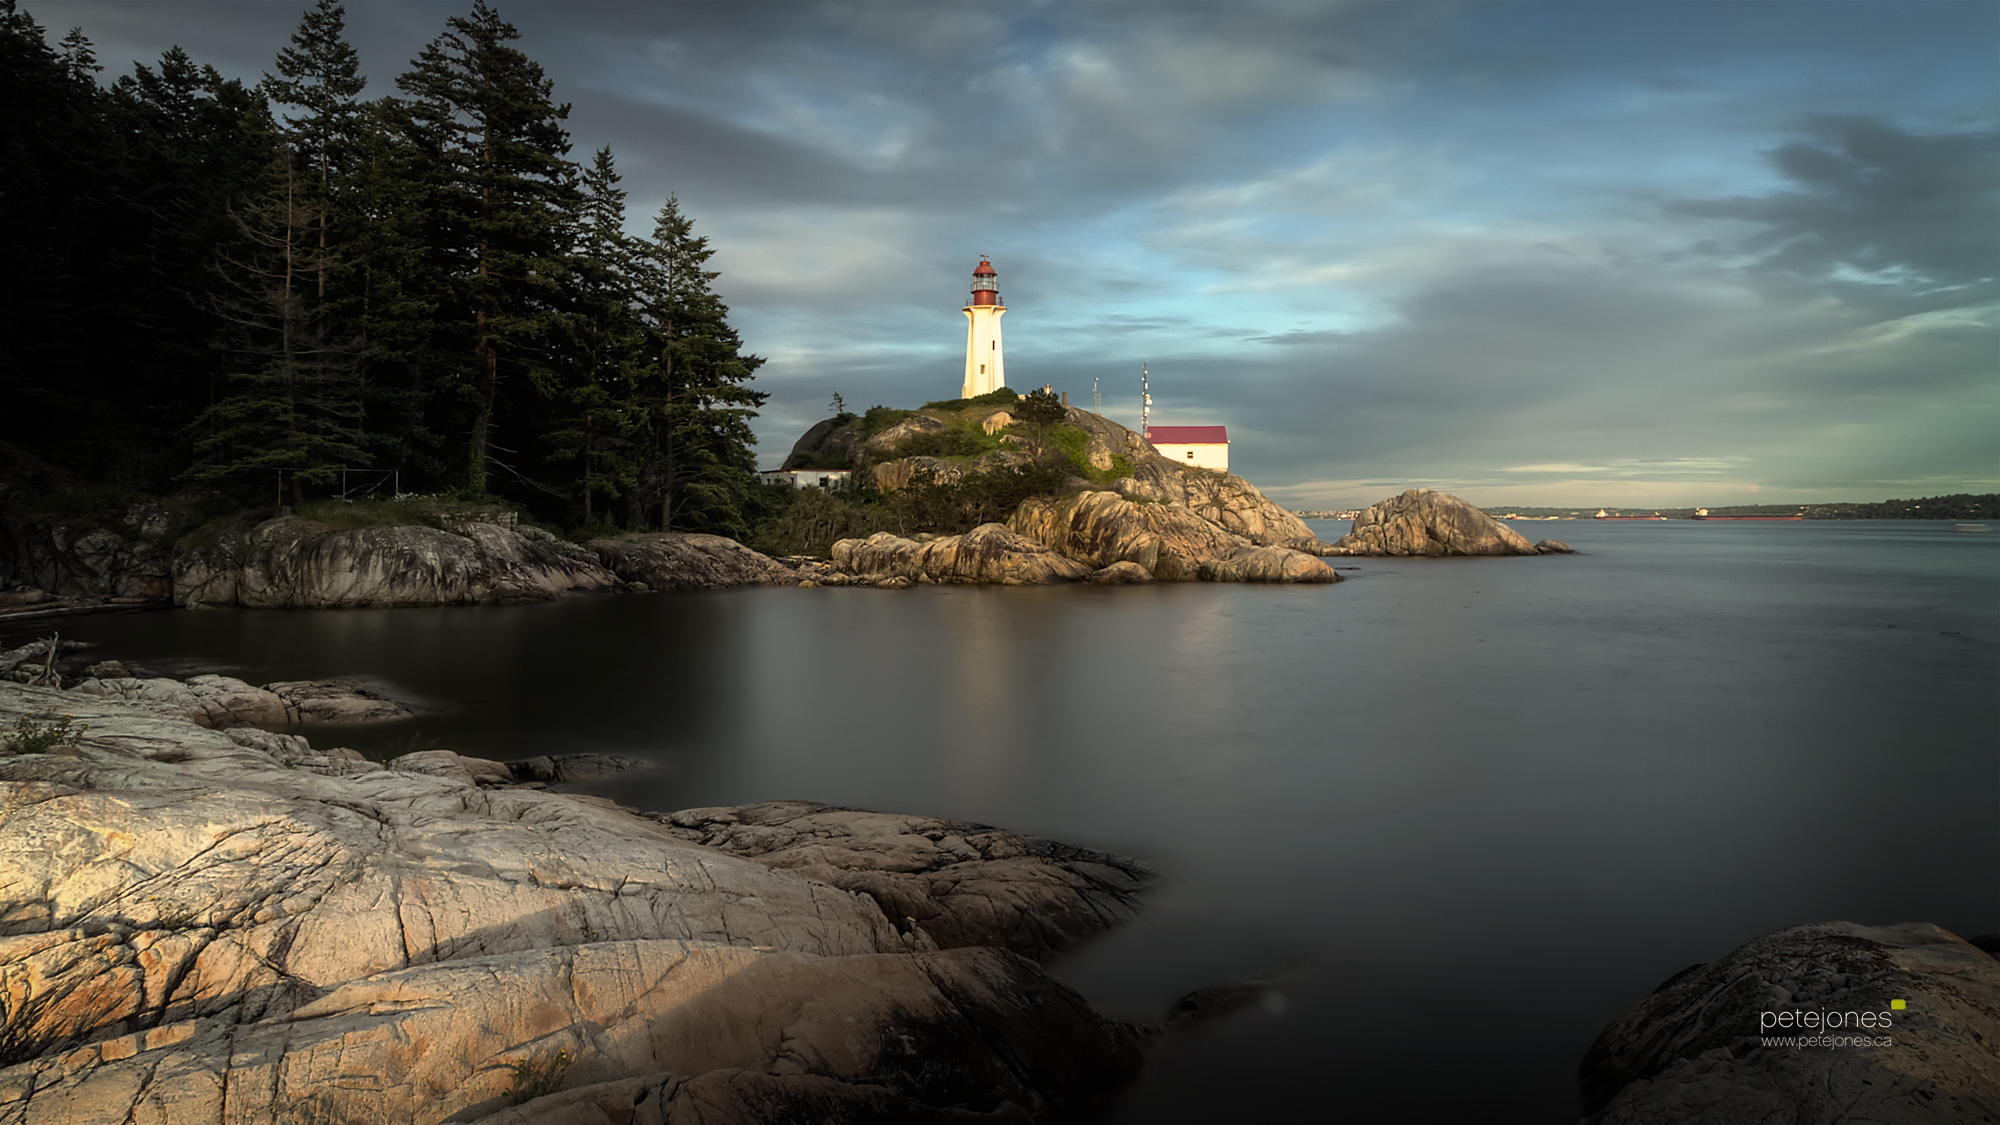 Monte Clark Gallery Vancouver, Hiking in Lighthouse Park | Pete Jones Vancouver Photography Blog